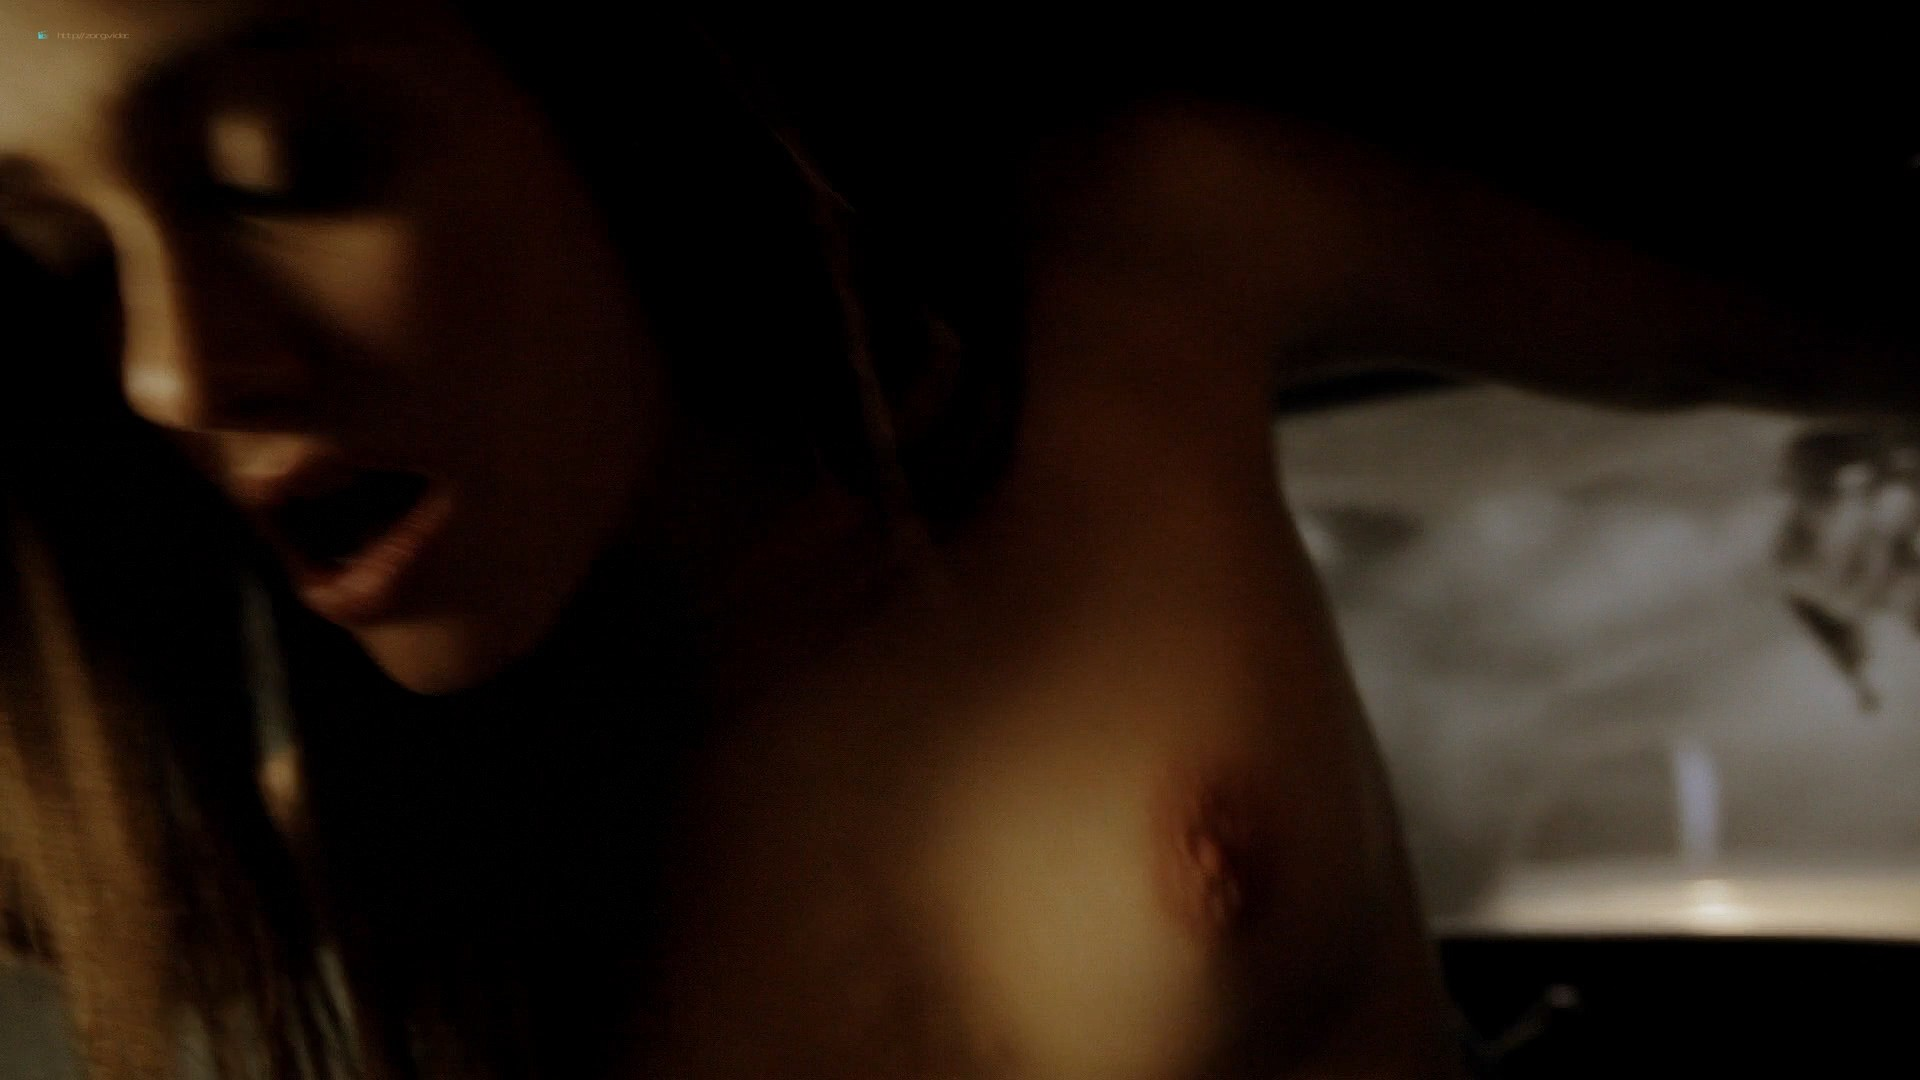 Emmy Rossum nude topless and hot sex in the car - Shameless (2011) S1E3 HD 1080p BluRay (7)